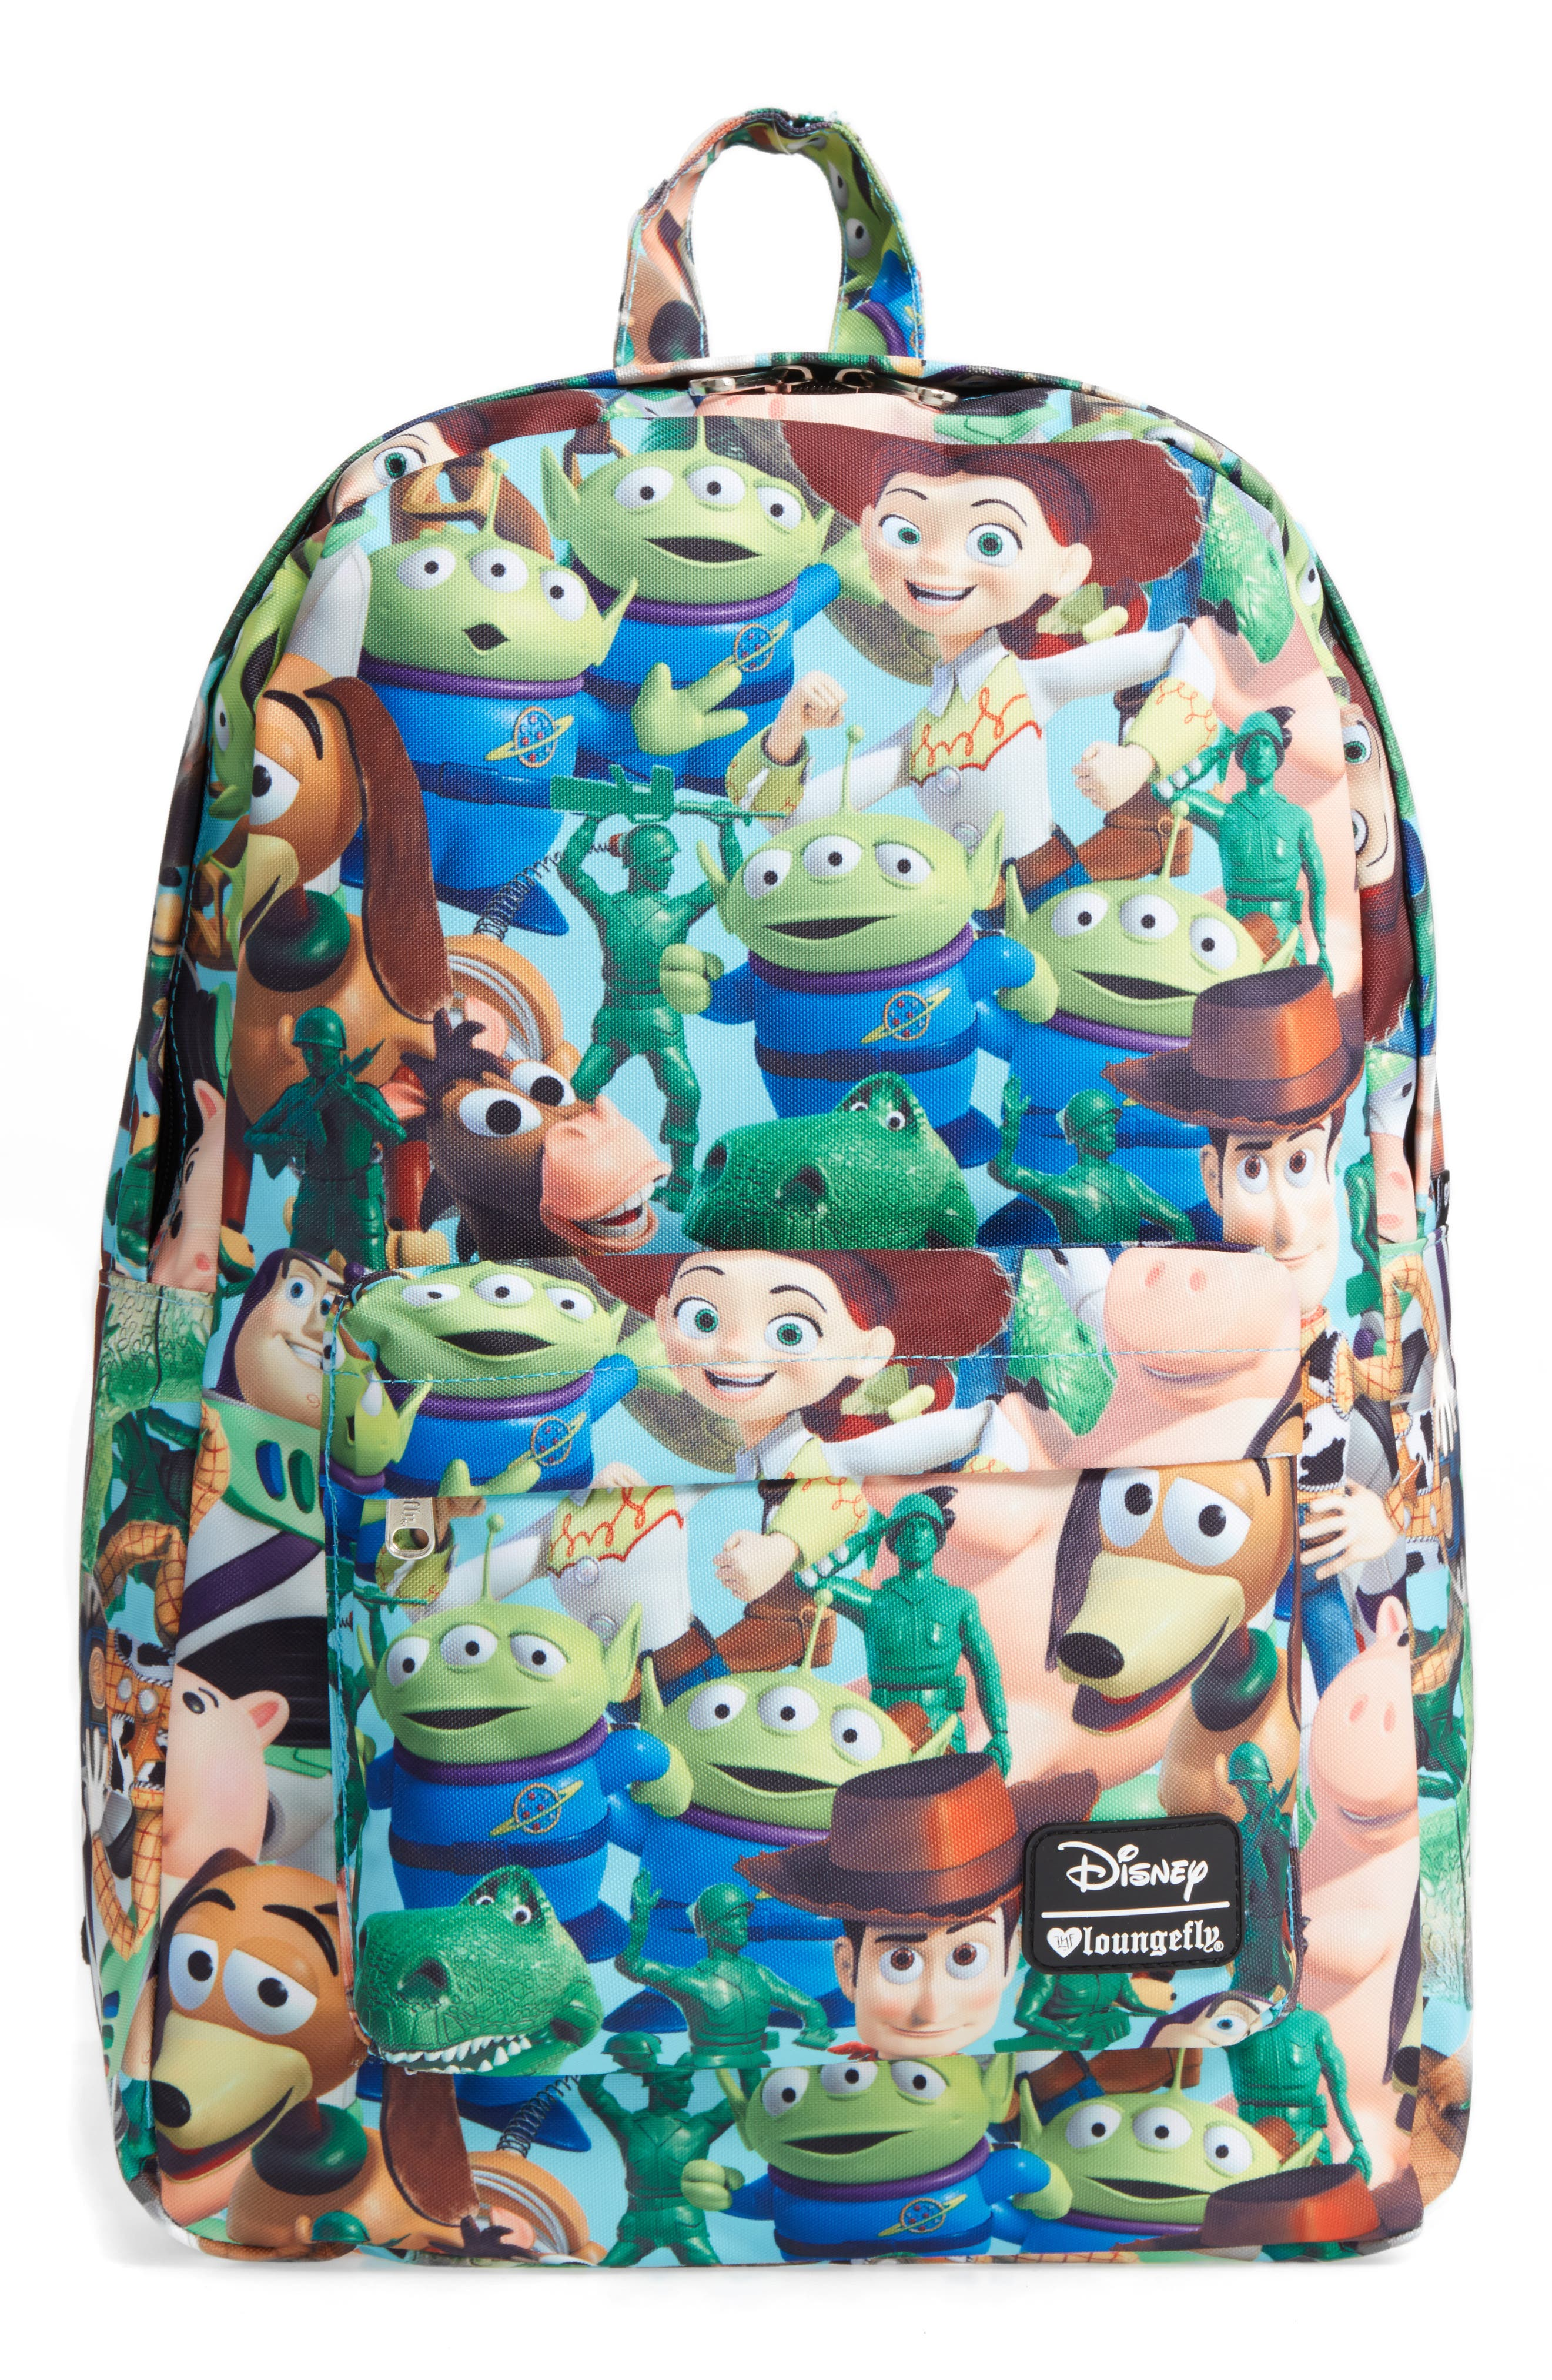 Disney<sup>®</sup> Toy Story Backpack,                         Main,                         color, Blue Multi